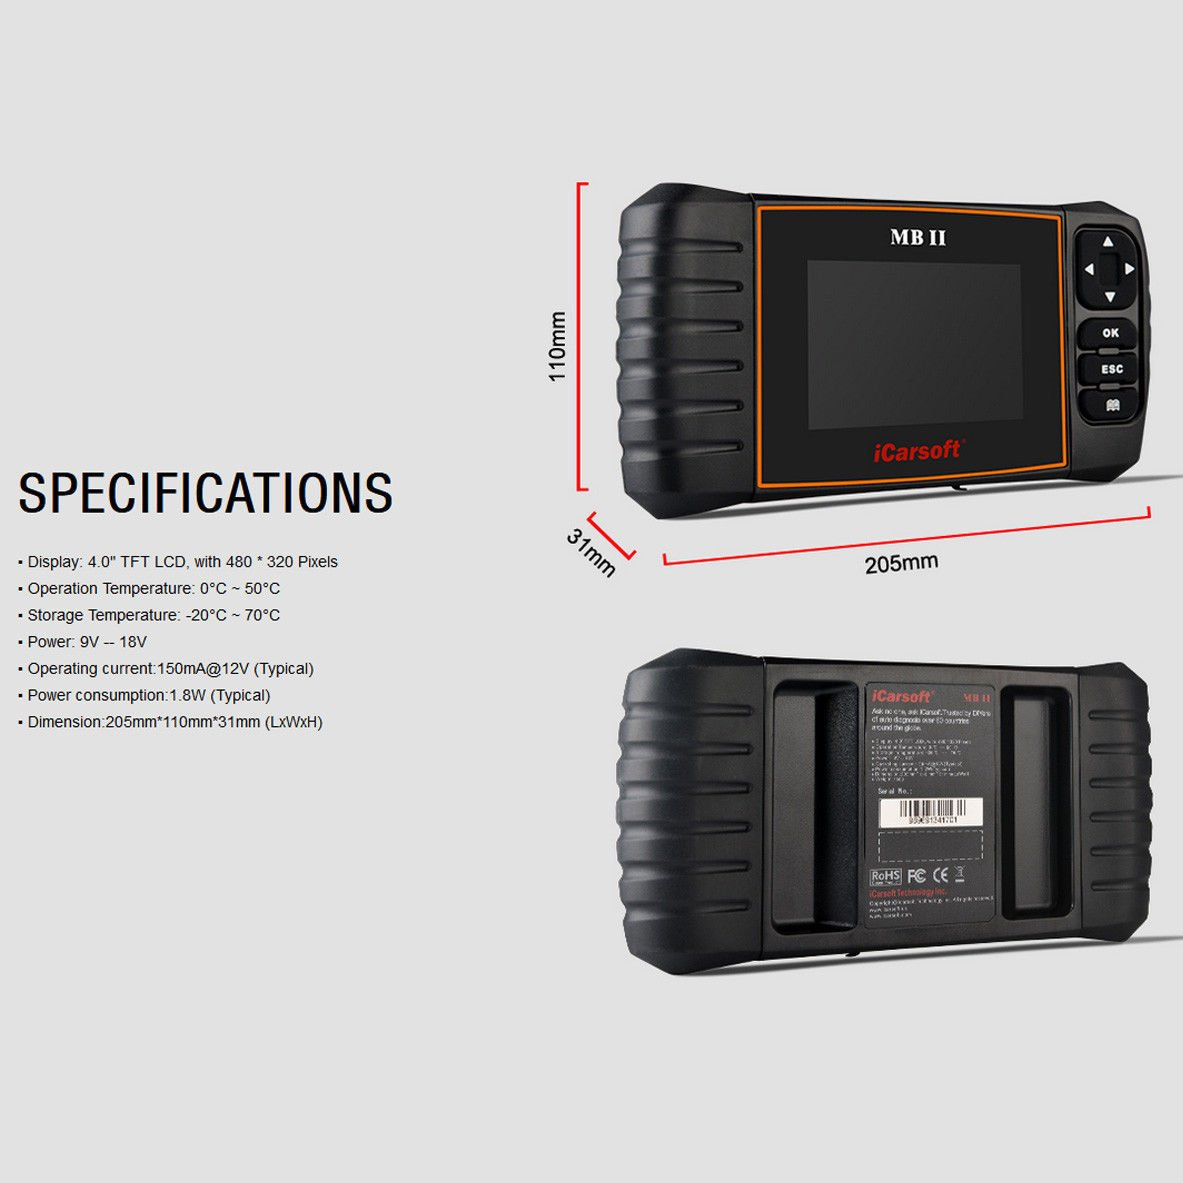 iCarsoft MBII for Mercedes Benz/Sprinter/Smart Professional Diagnostic Tool Scanner, New Version by iCarsoft (Image #4)